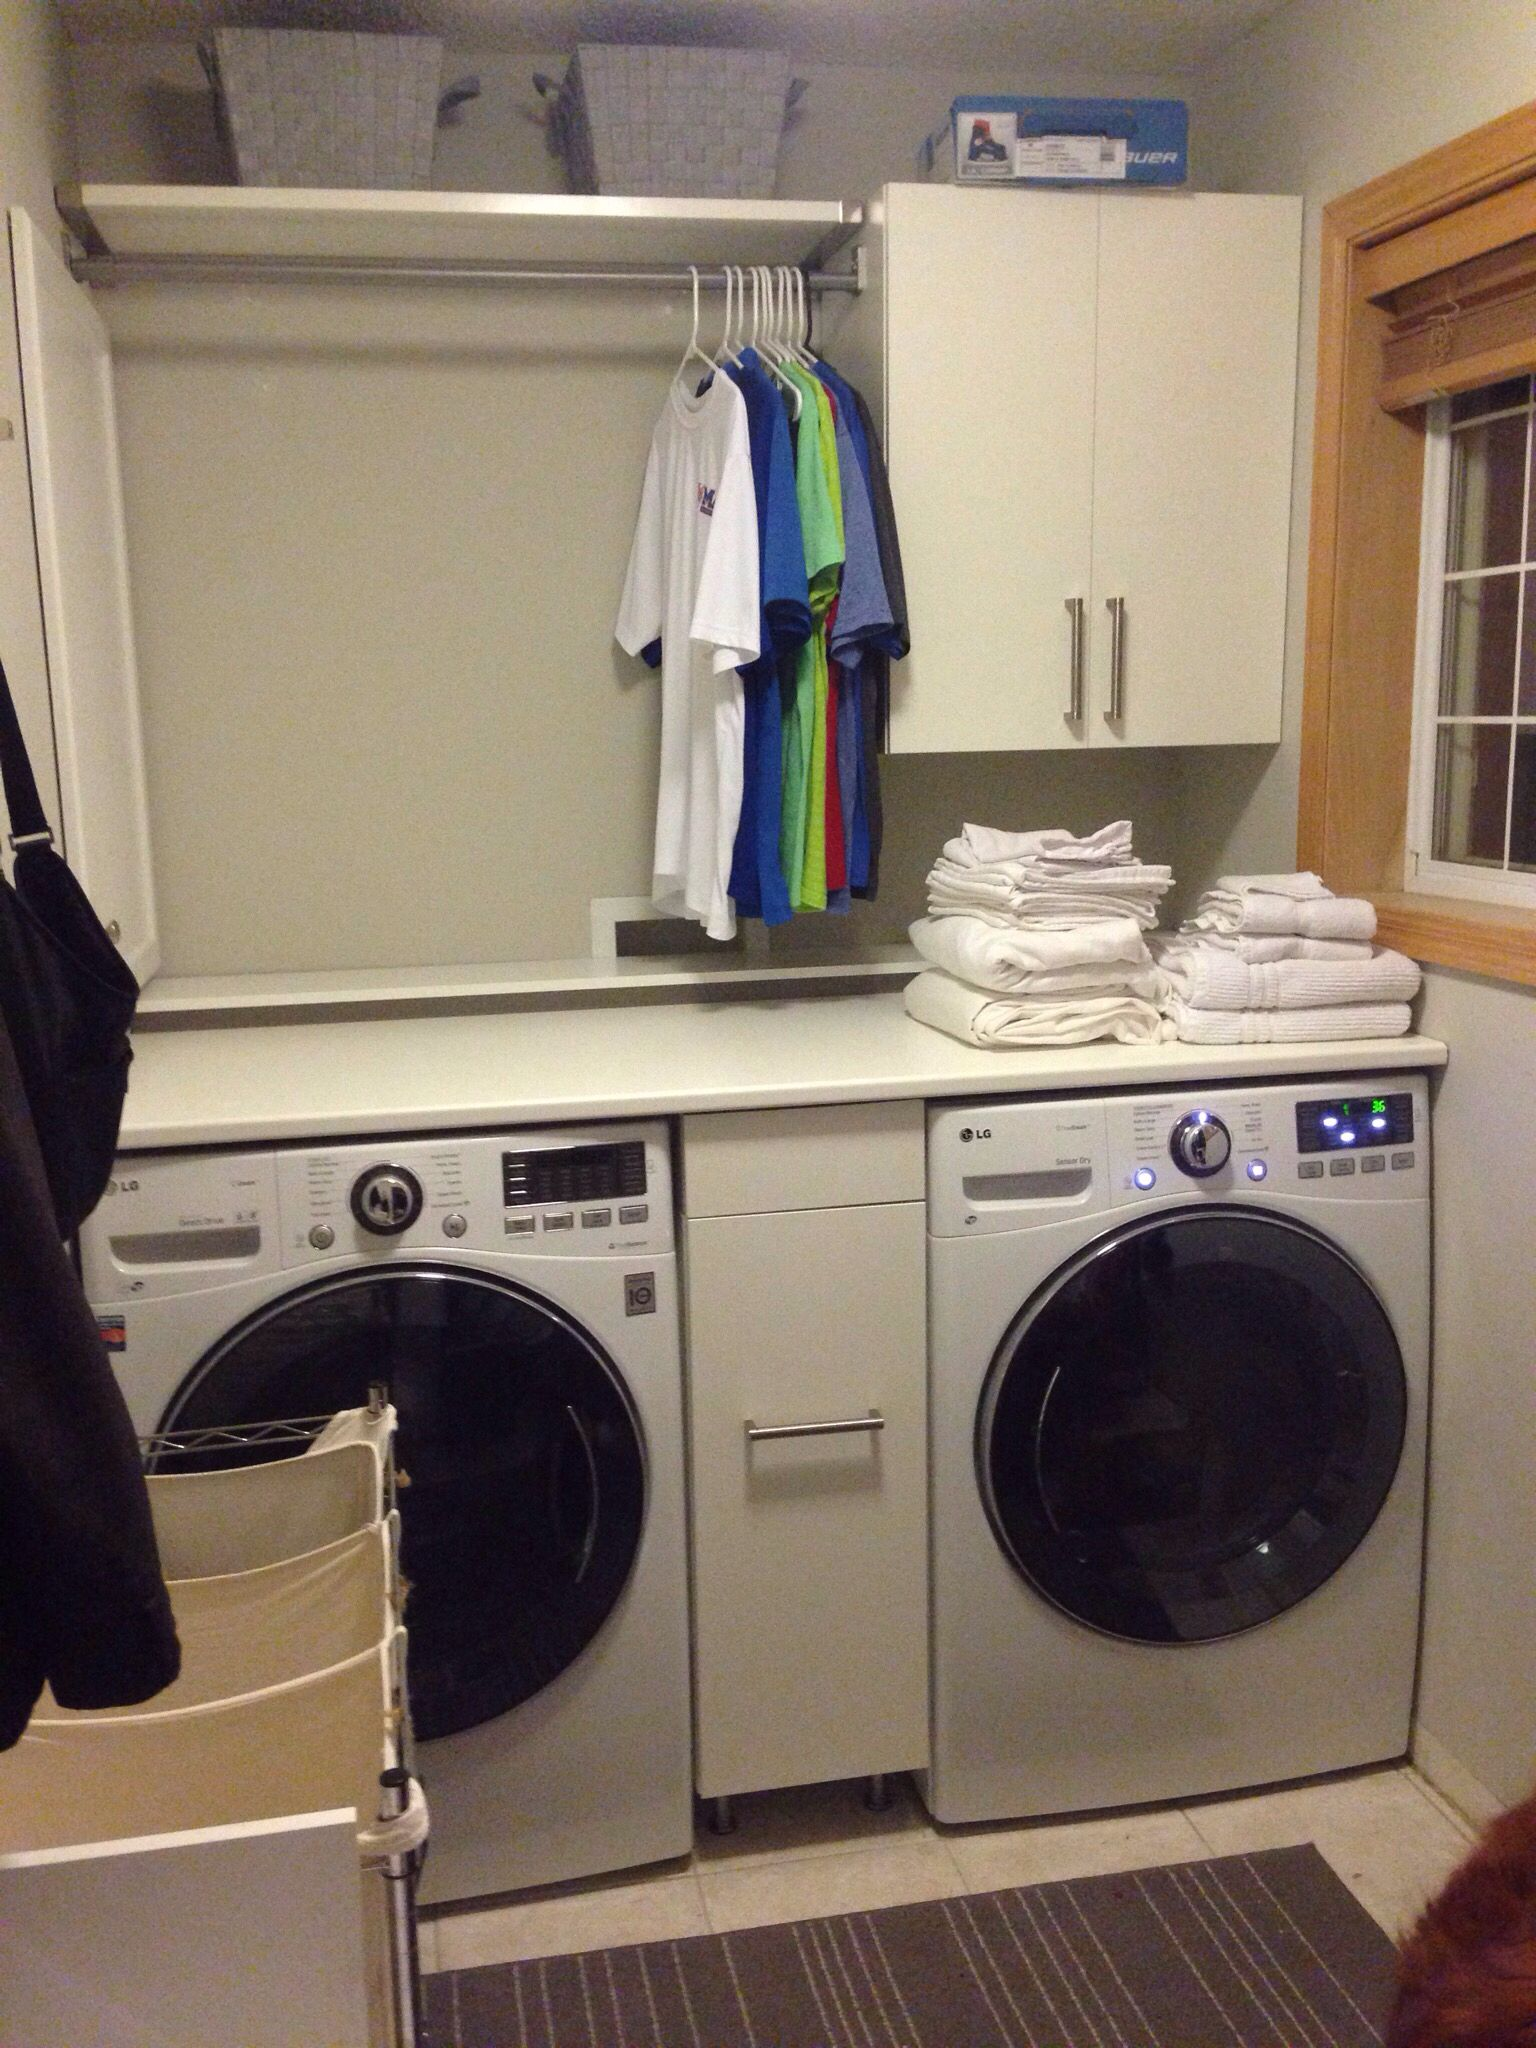 Laundry Room Ikea Hack Ikea Laundry Room Laundry Room Hacks